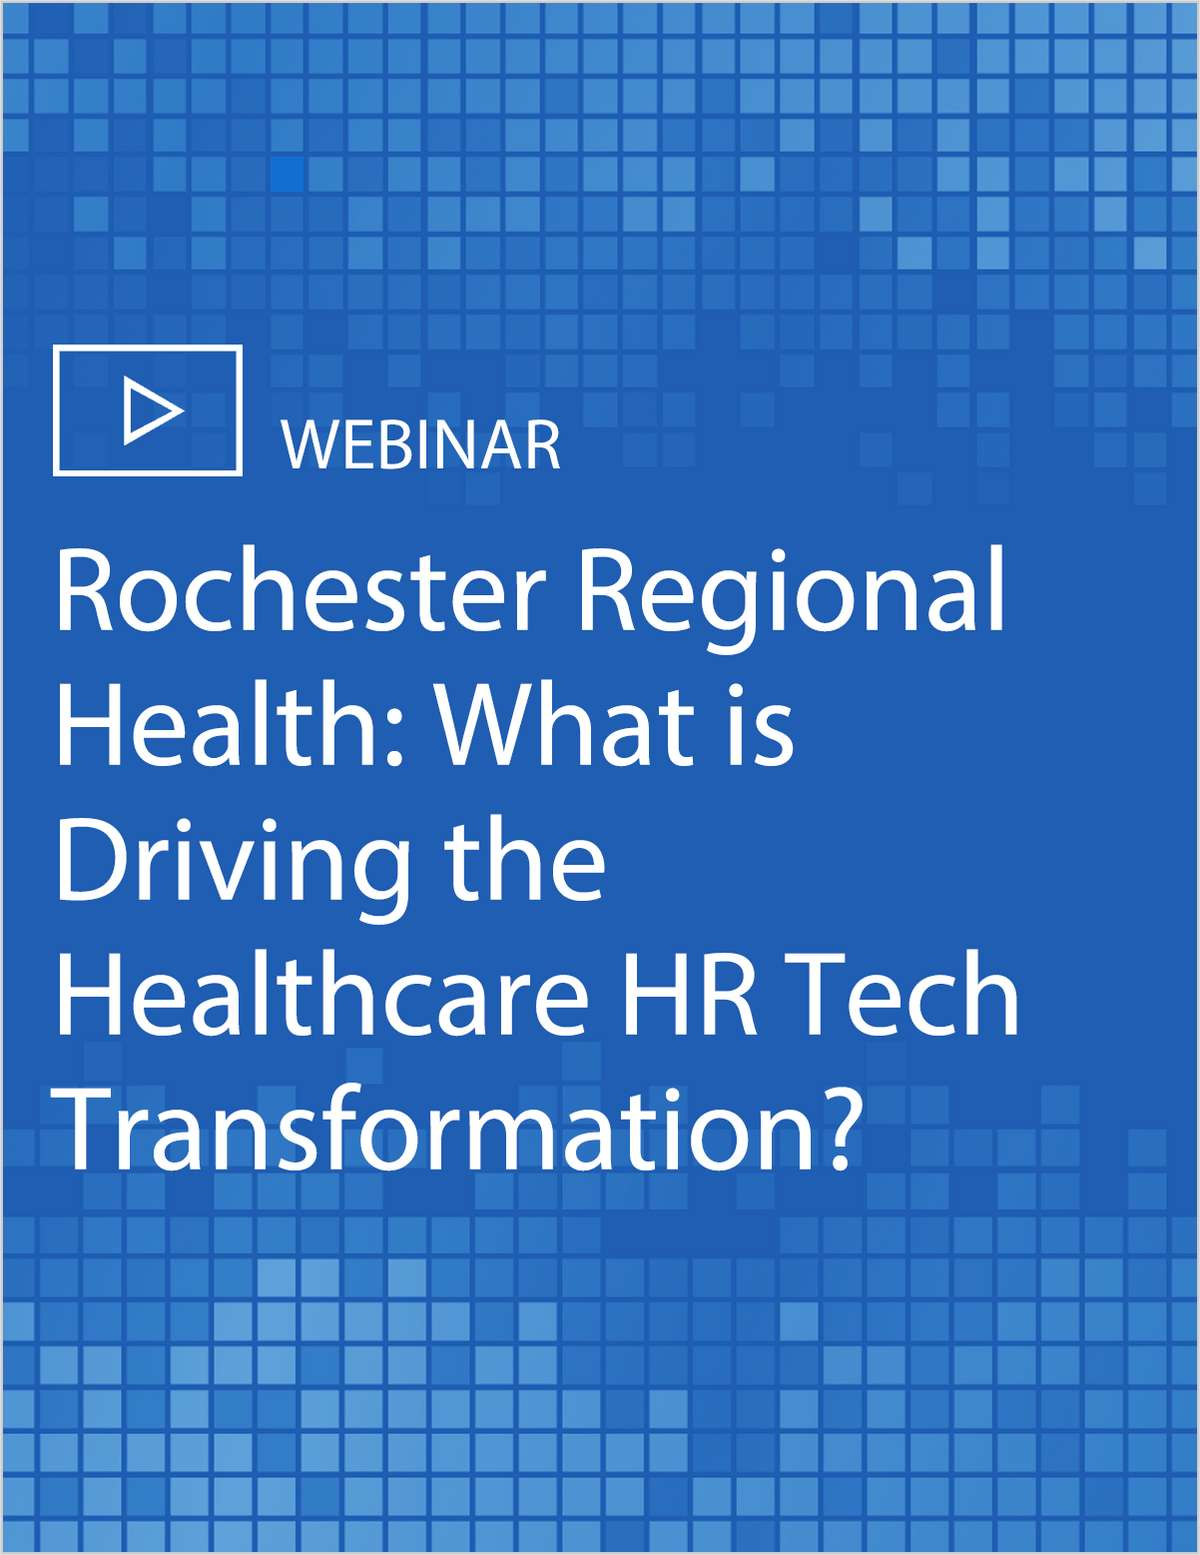 Rochester Regional Health: What is Driving the Healthcare HR Tech Transformation?